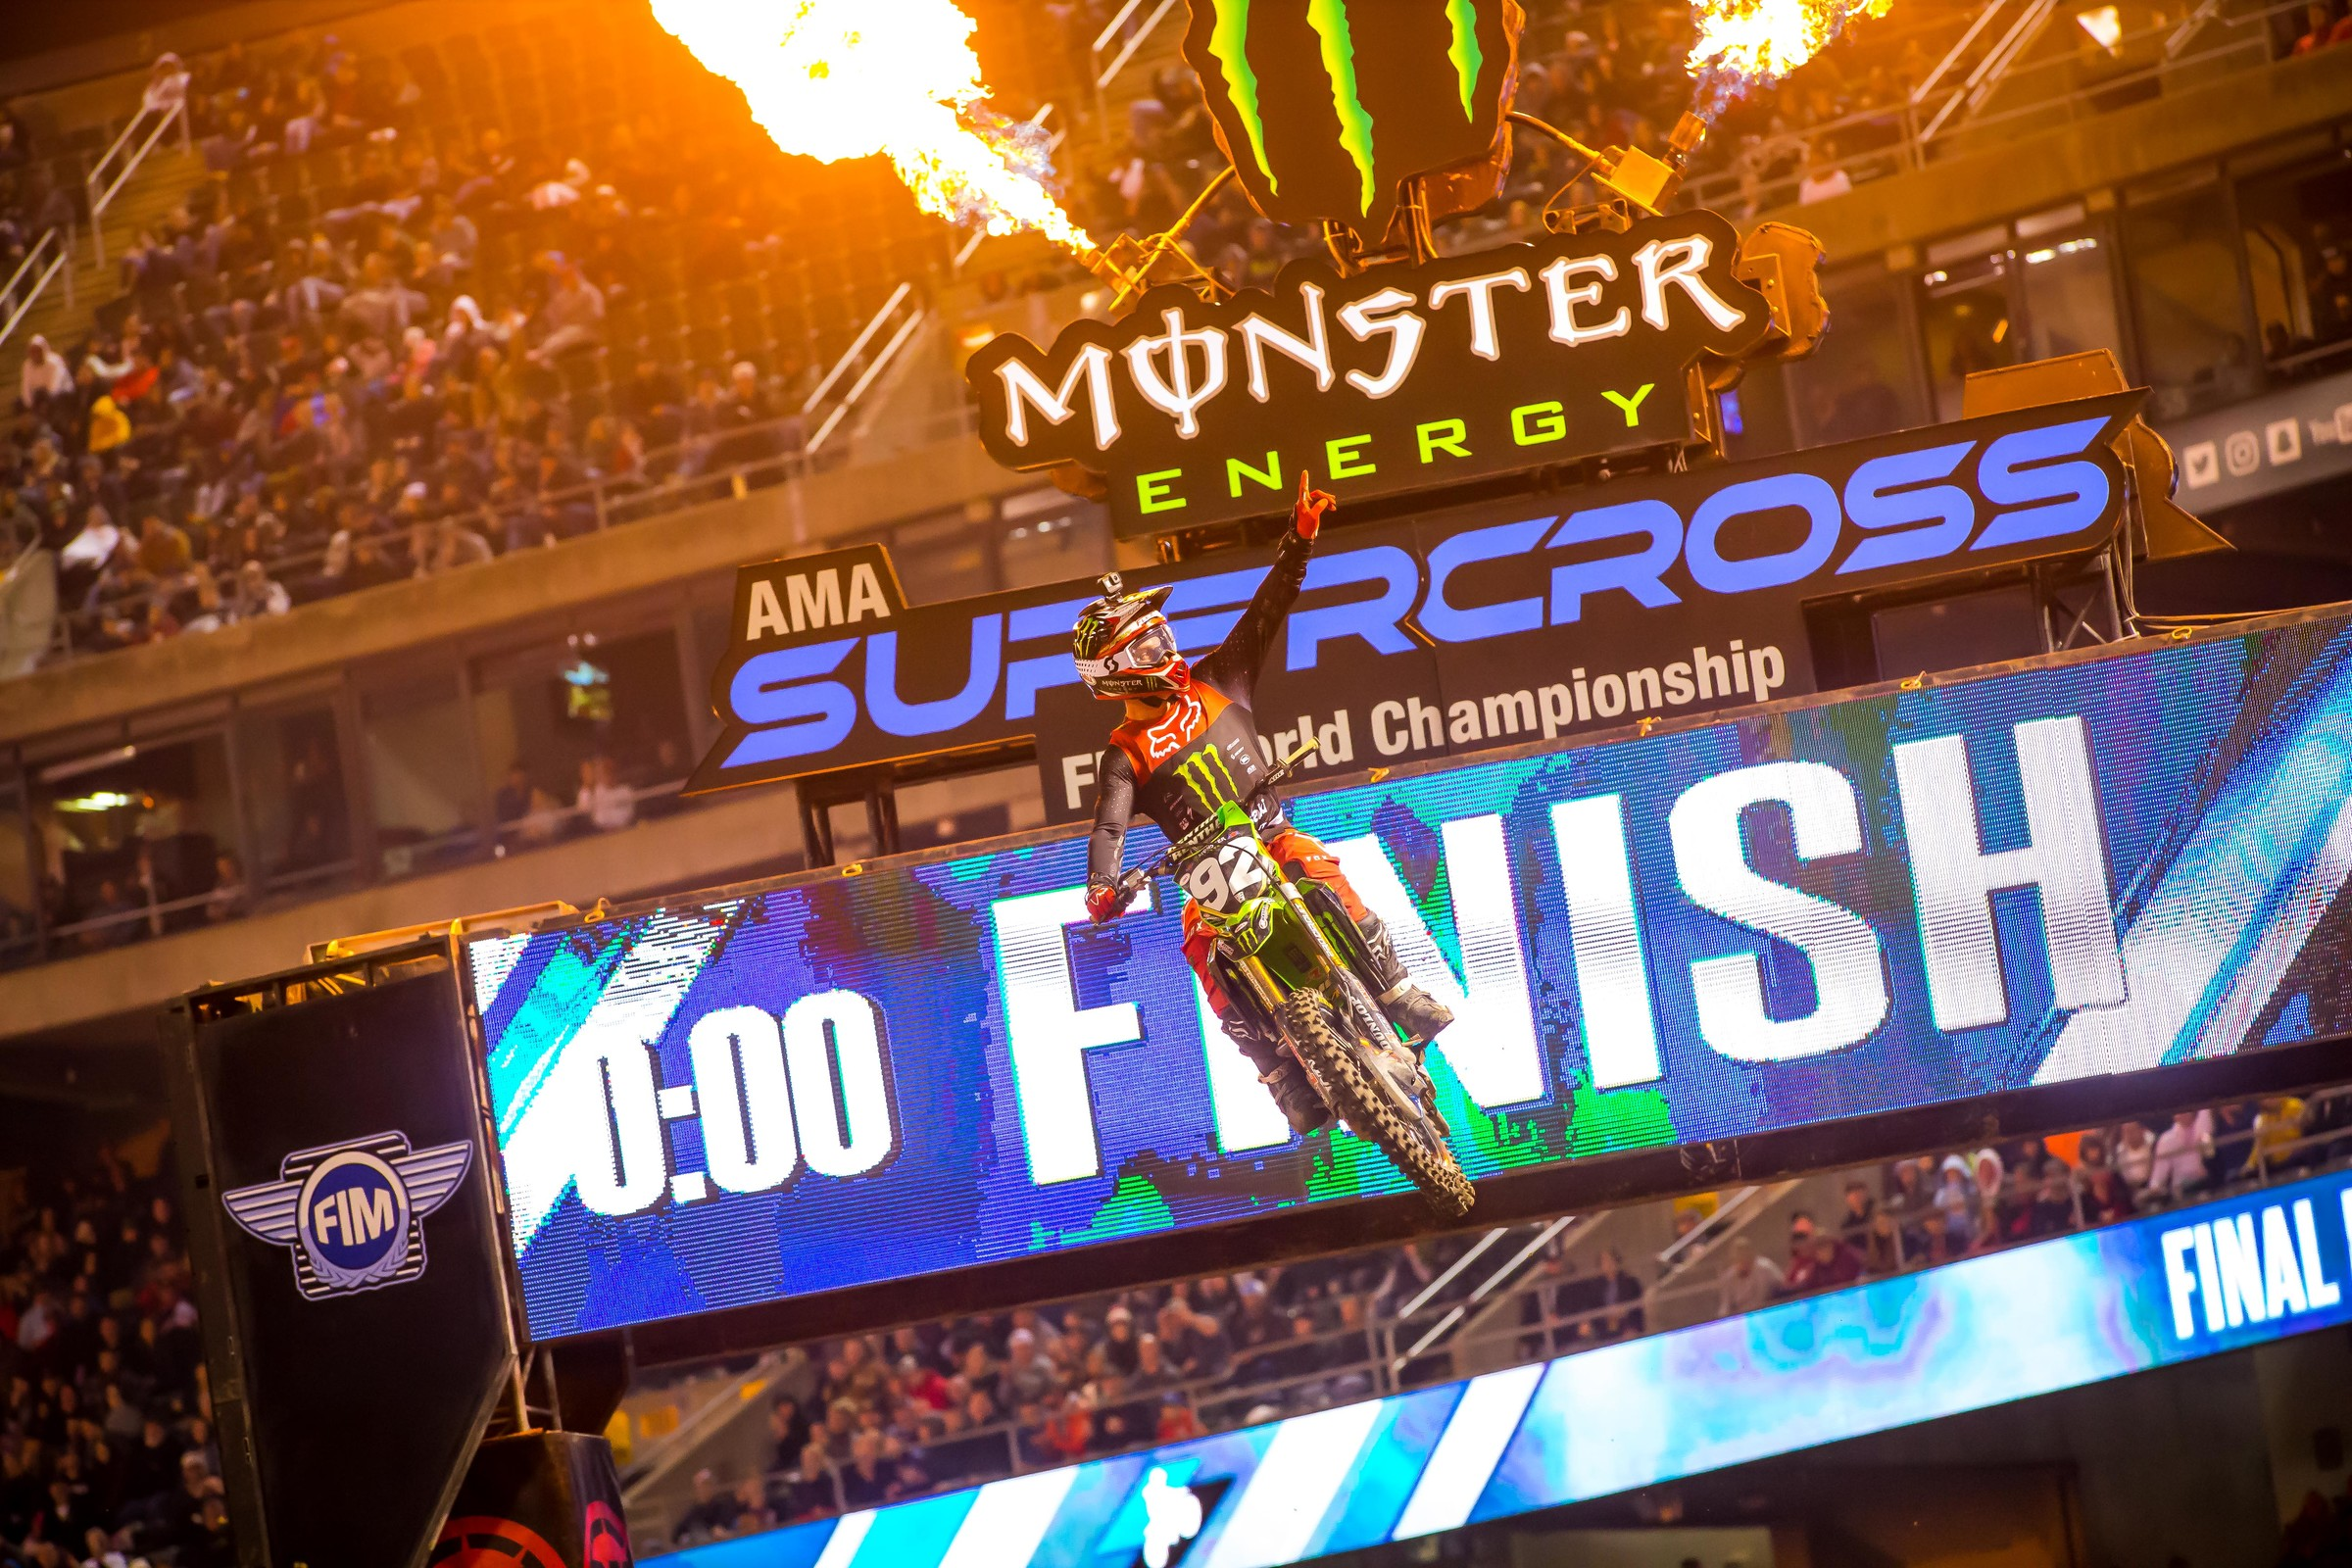 Adam Cianciarulo logged his second win of the season tonight in Oakland.